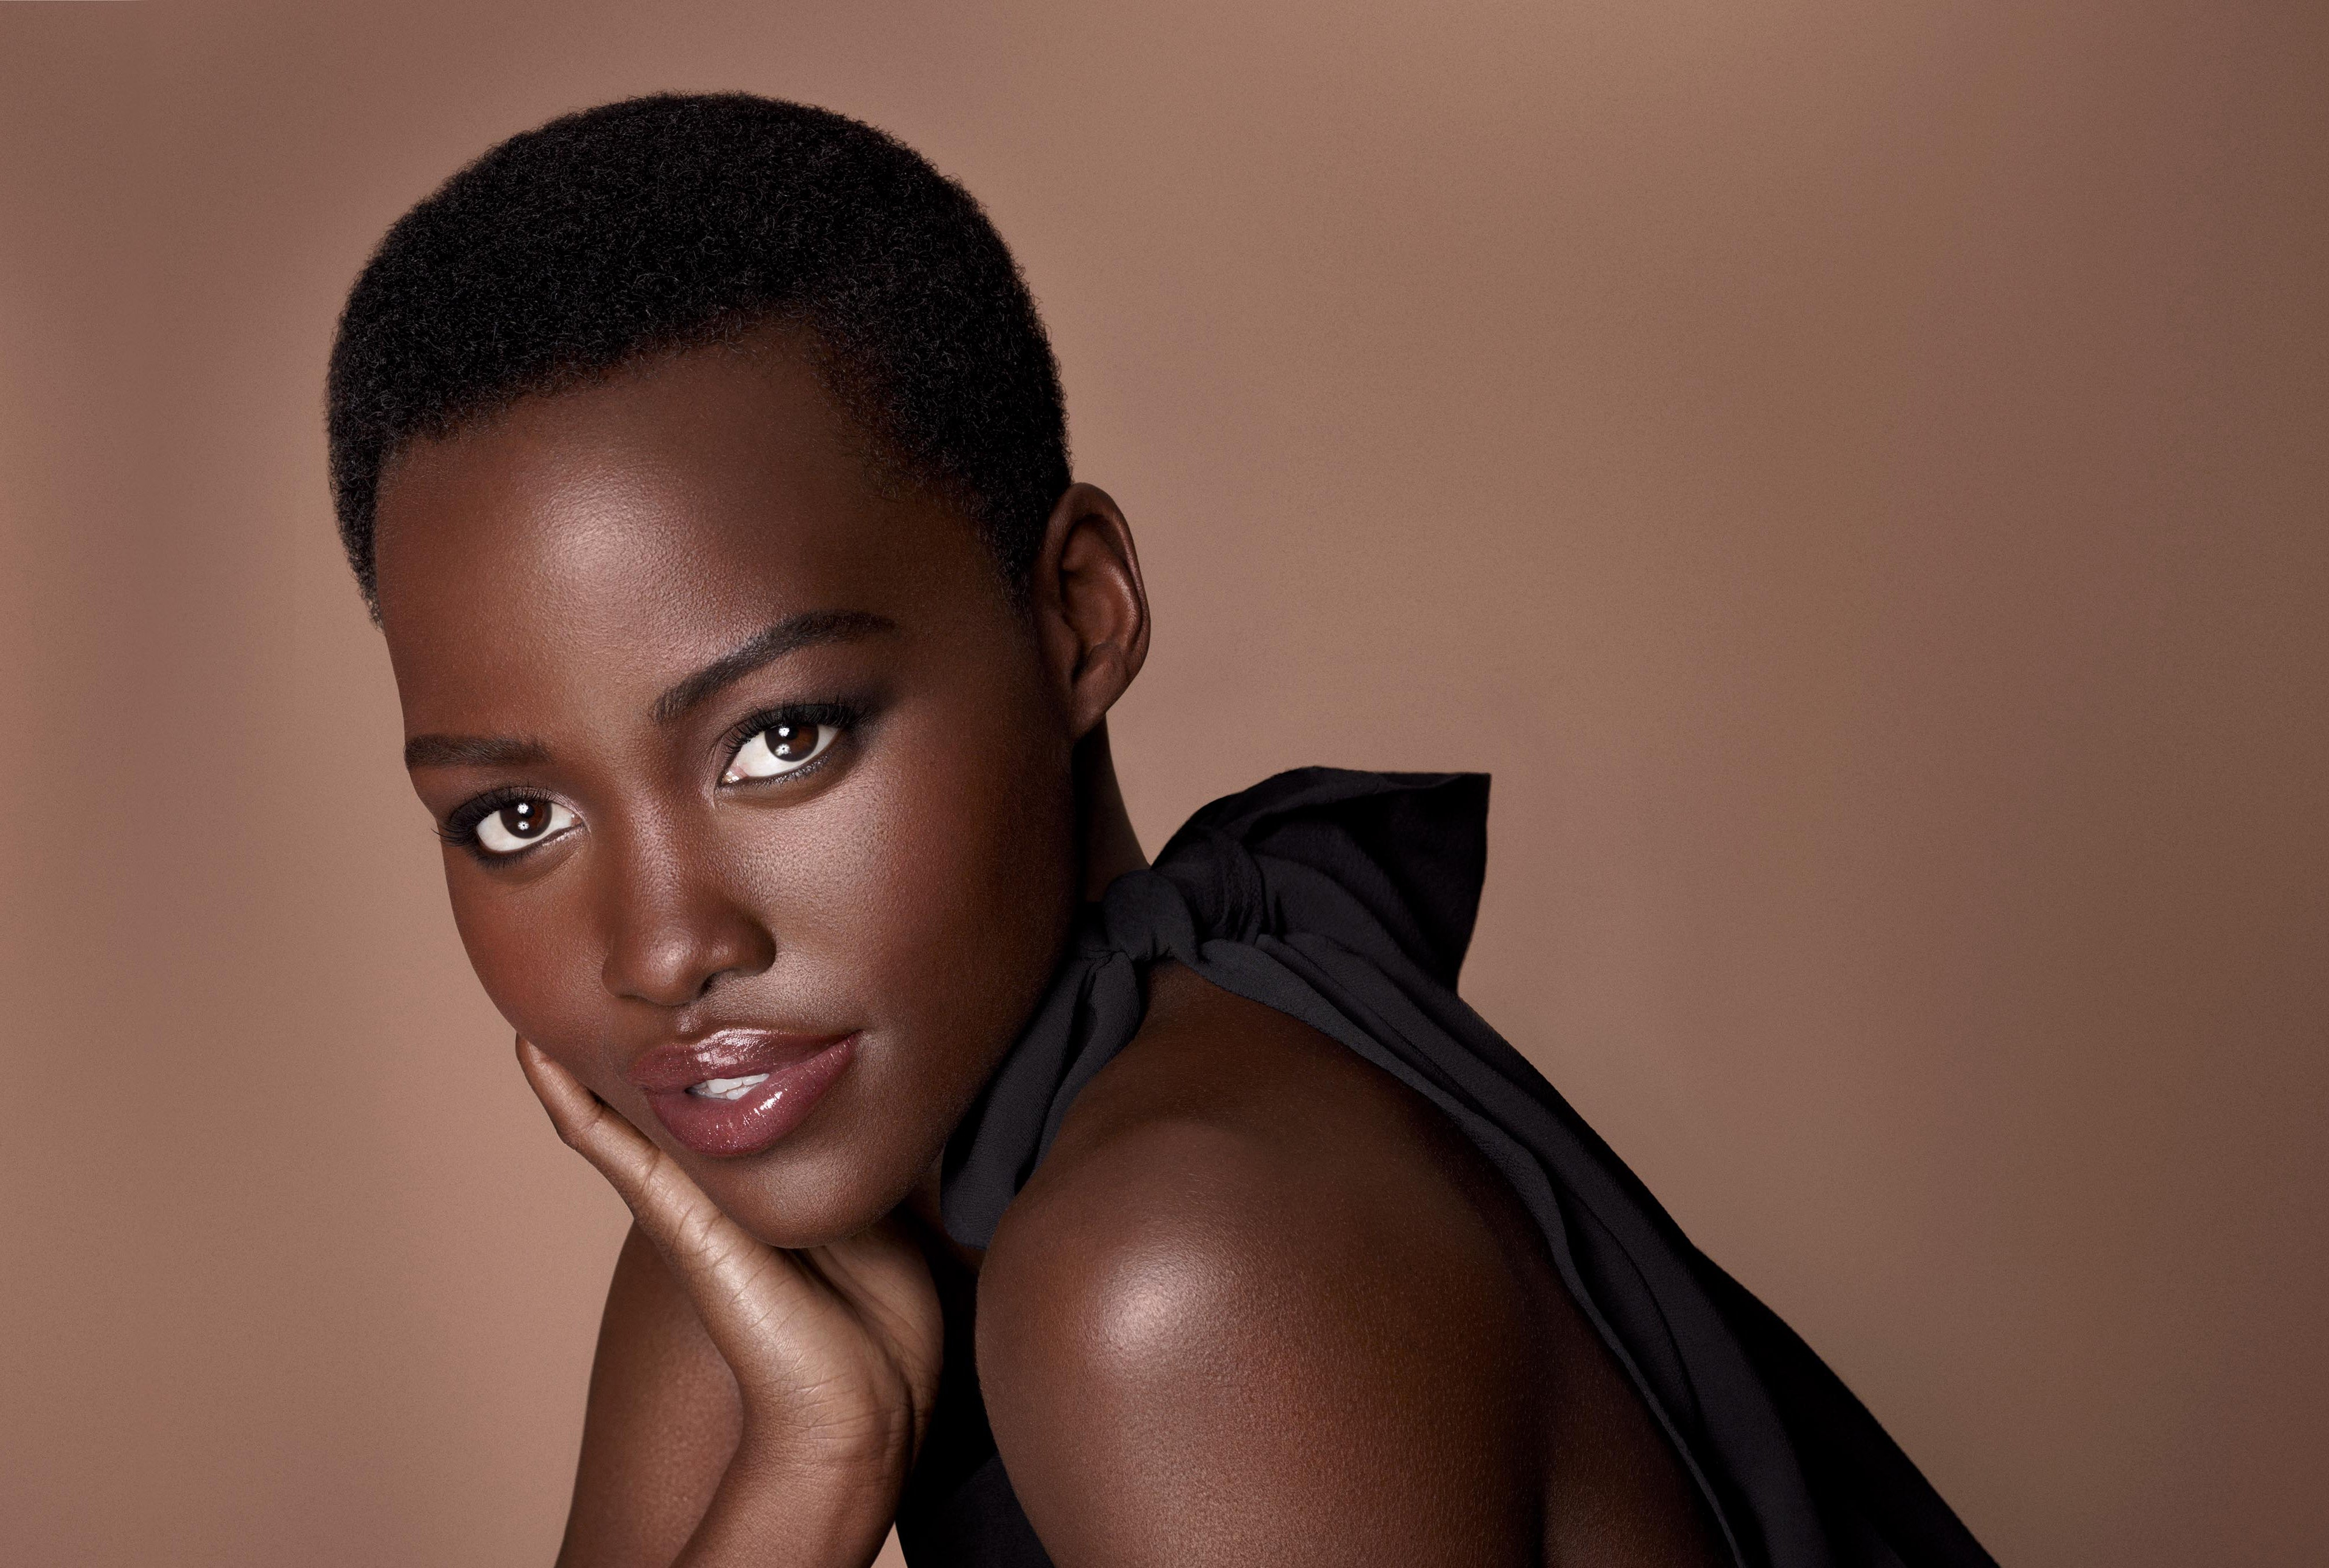 50 Stylish Short Hairstyles For Black Women For Black Woman Short Hairstyles (View 24 of 25)